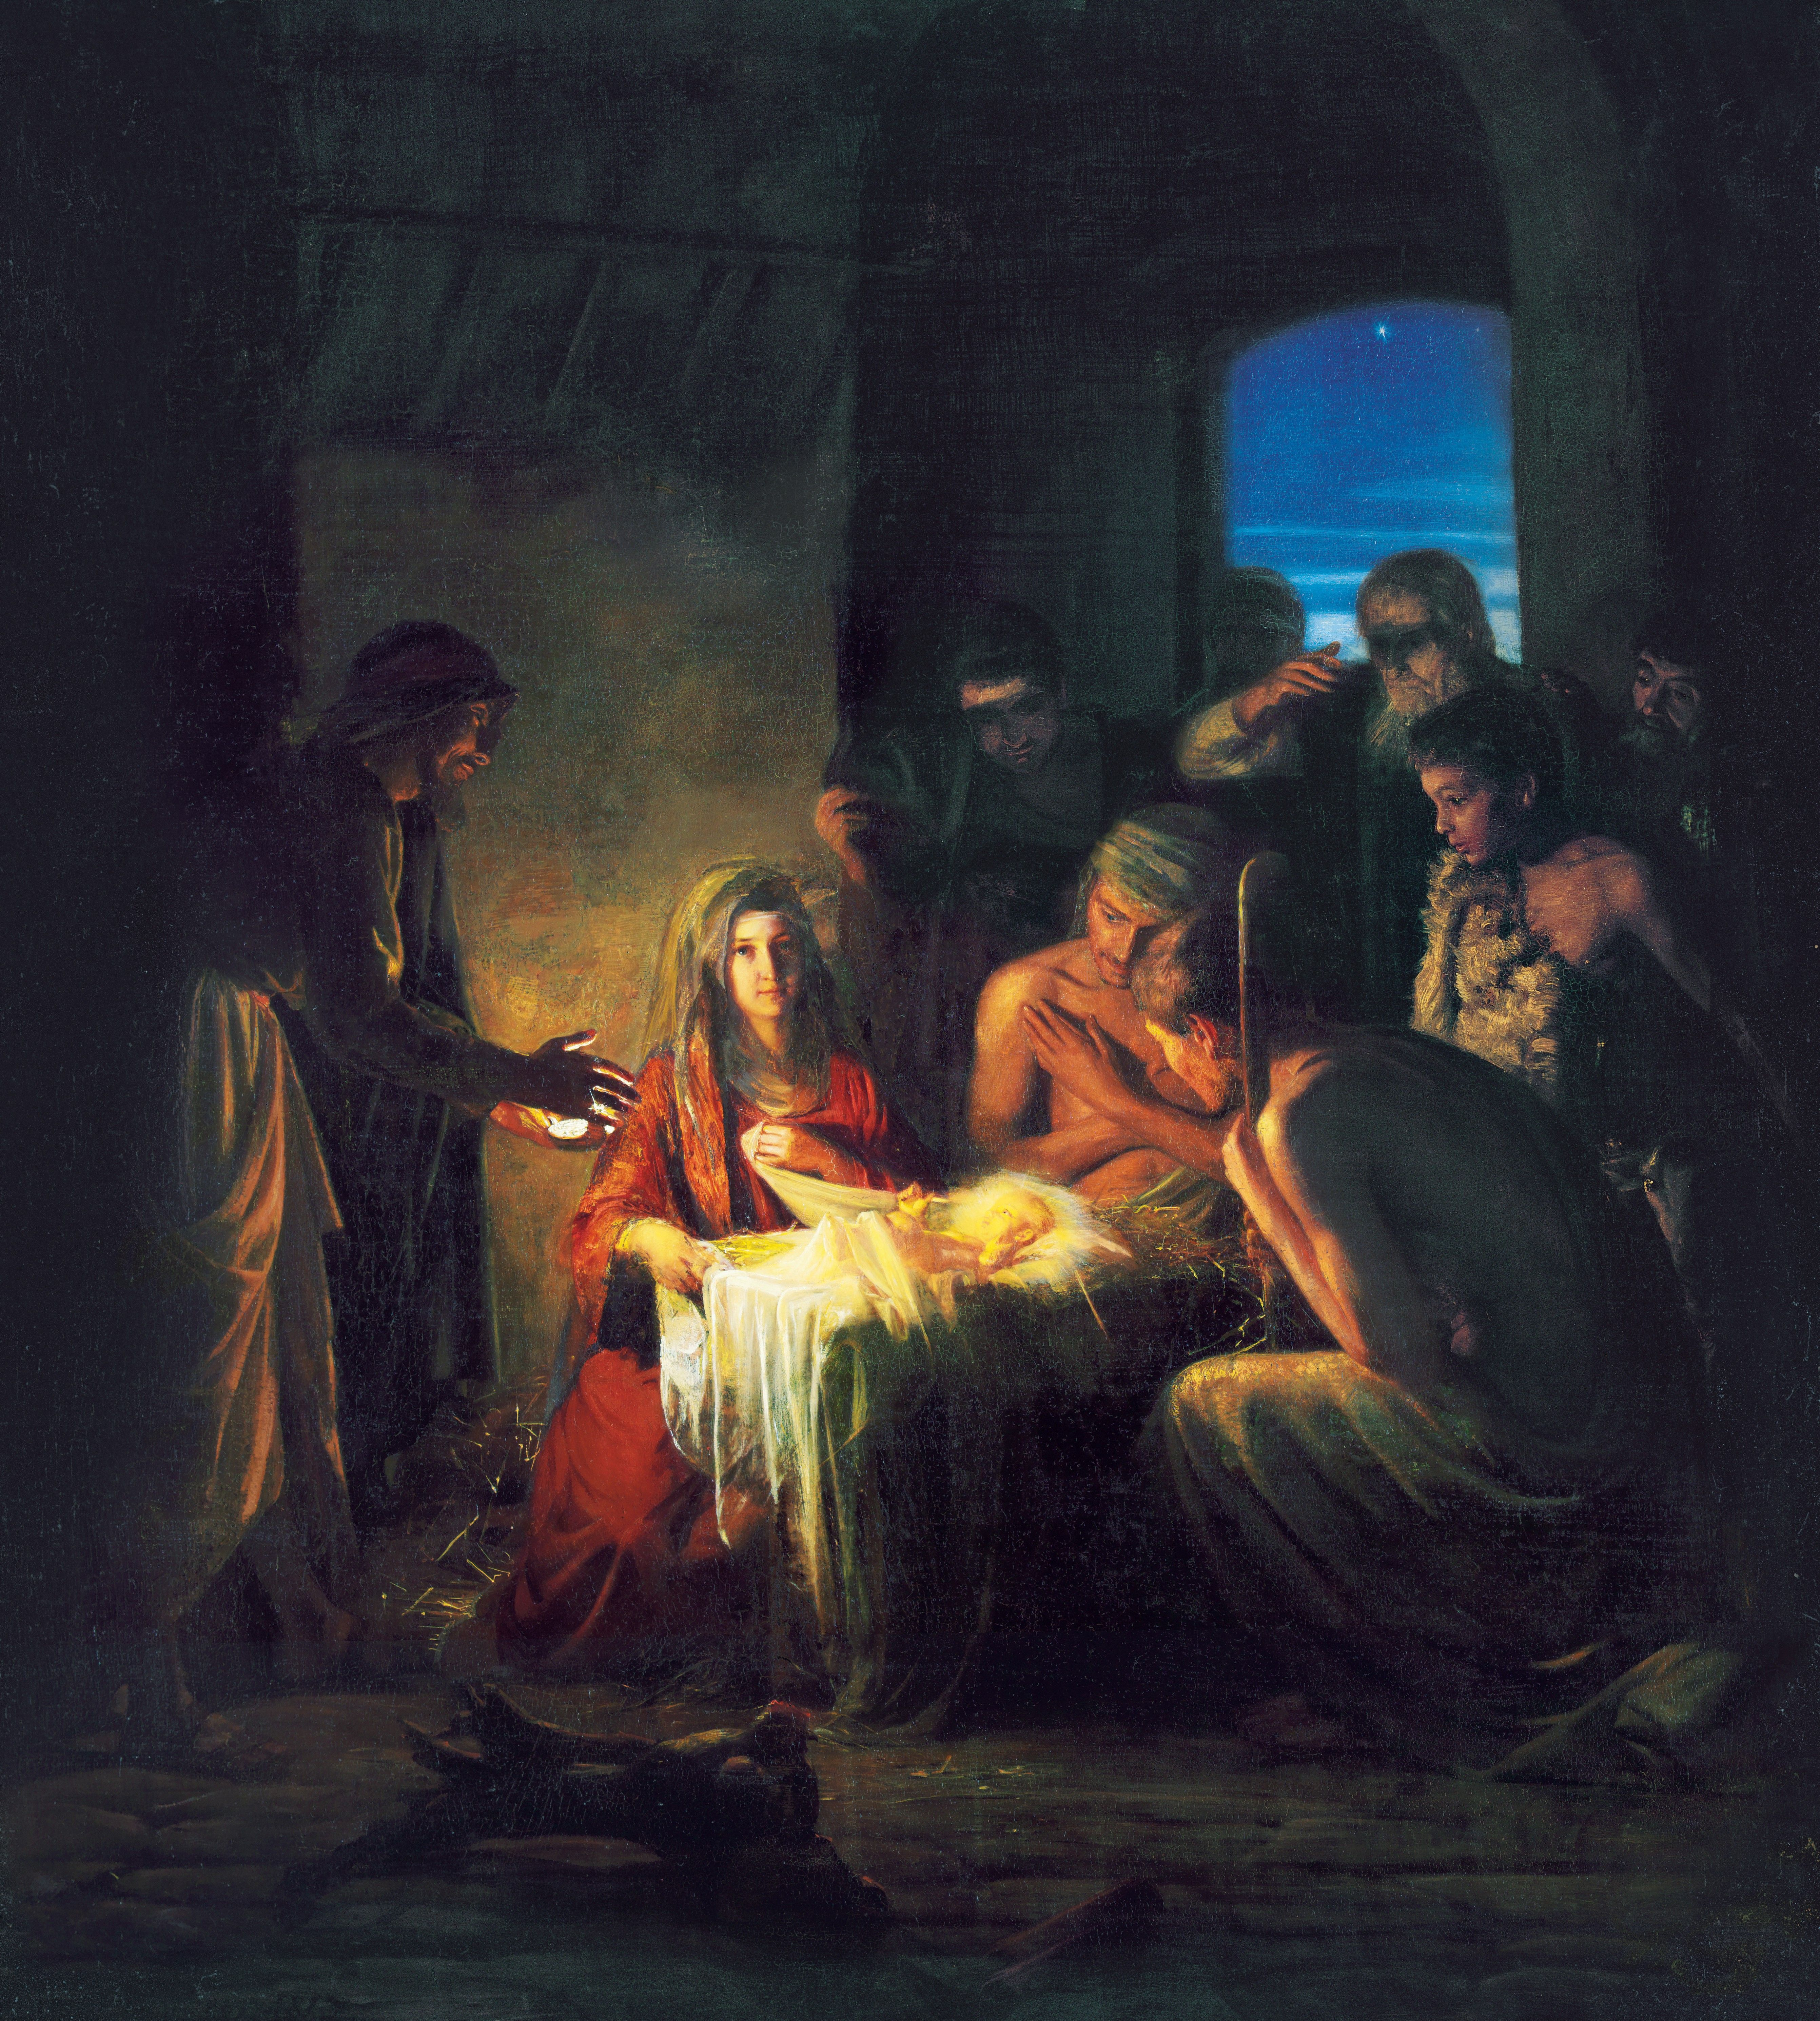 The Birth of Jesus, by Carl Heinrich Bloch (62116); GAK 200; GAB 30; Primary manual 1-75; Primary manual 2-41; Primary manual 4-10; Primary manual 6-50; Primary manual 7-03; Isaiah 7:14; Luke 2:1–16; 1 Nephi 11:13–21; Alma 7:10